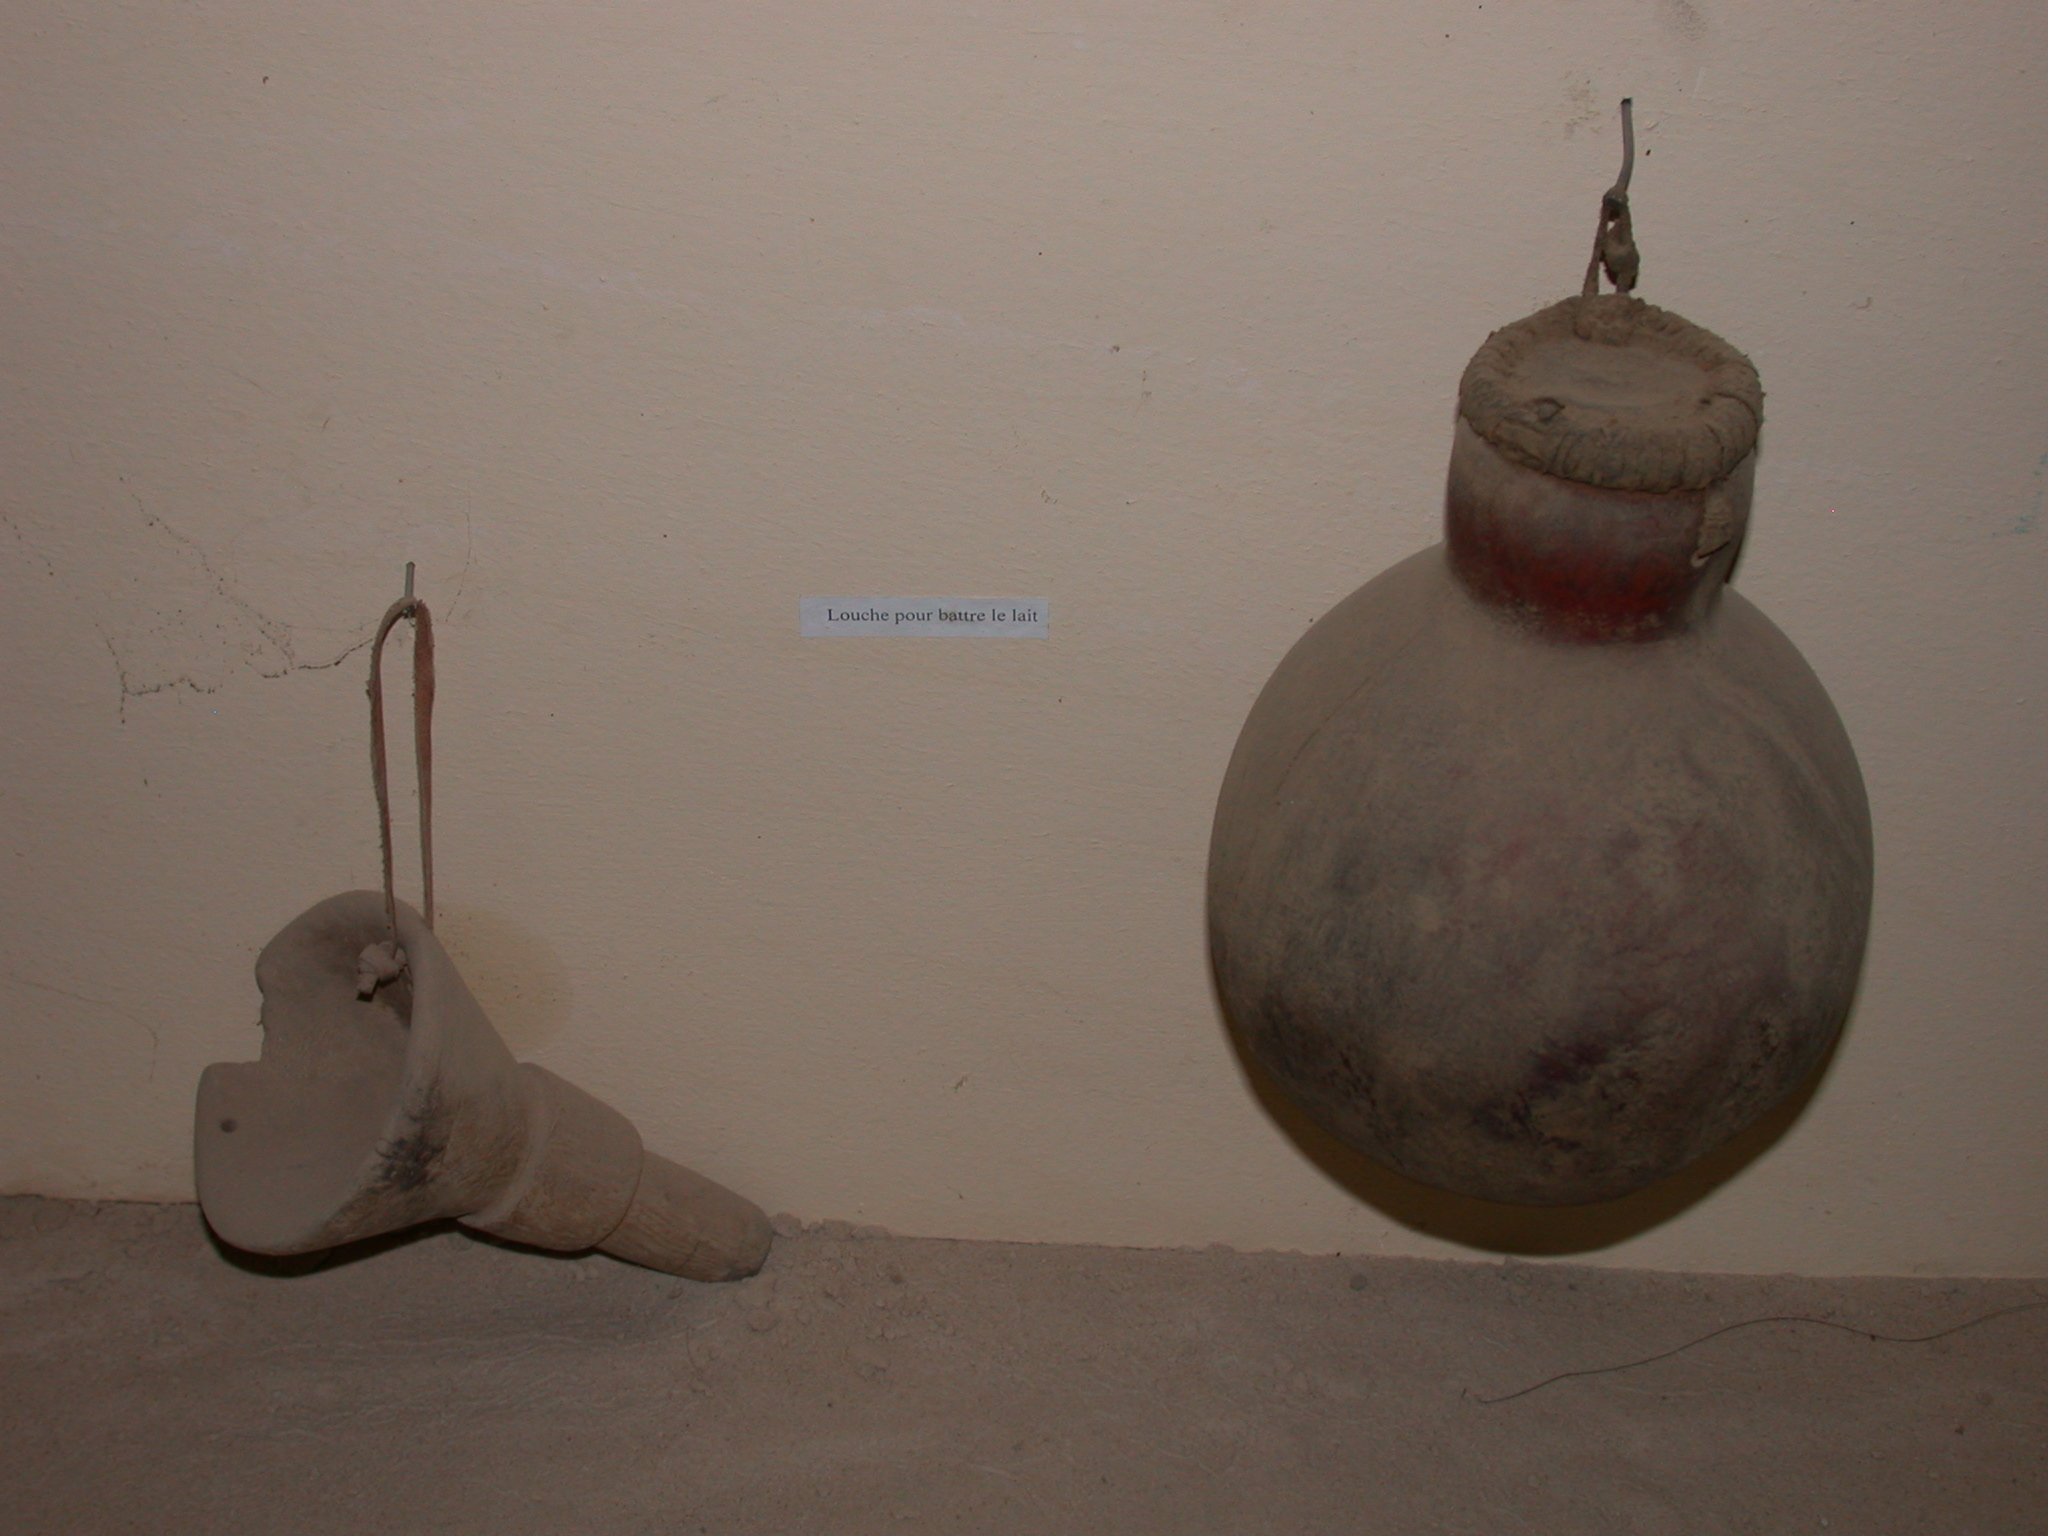 Containers for Milking and Storage of Butter, Funnel, Gourd, Timbuktu Ethnological Museum, Timbuktu, Mali